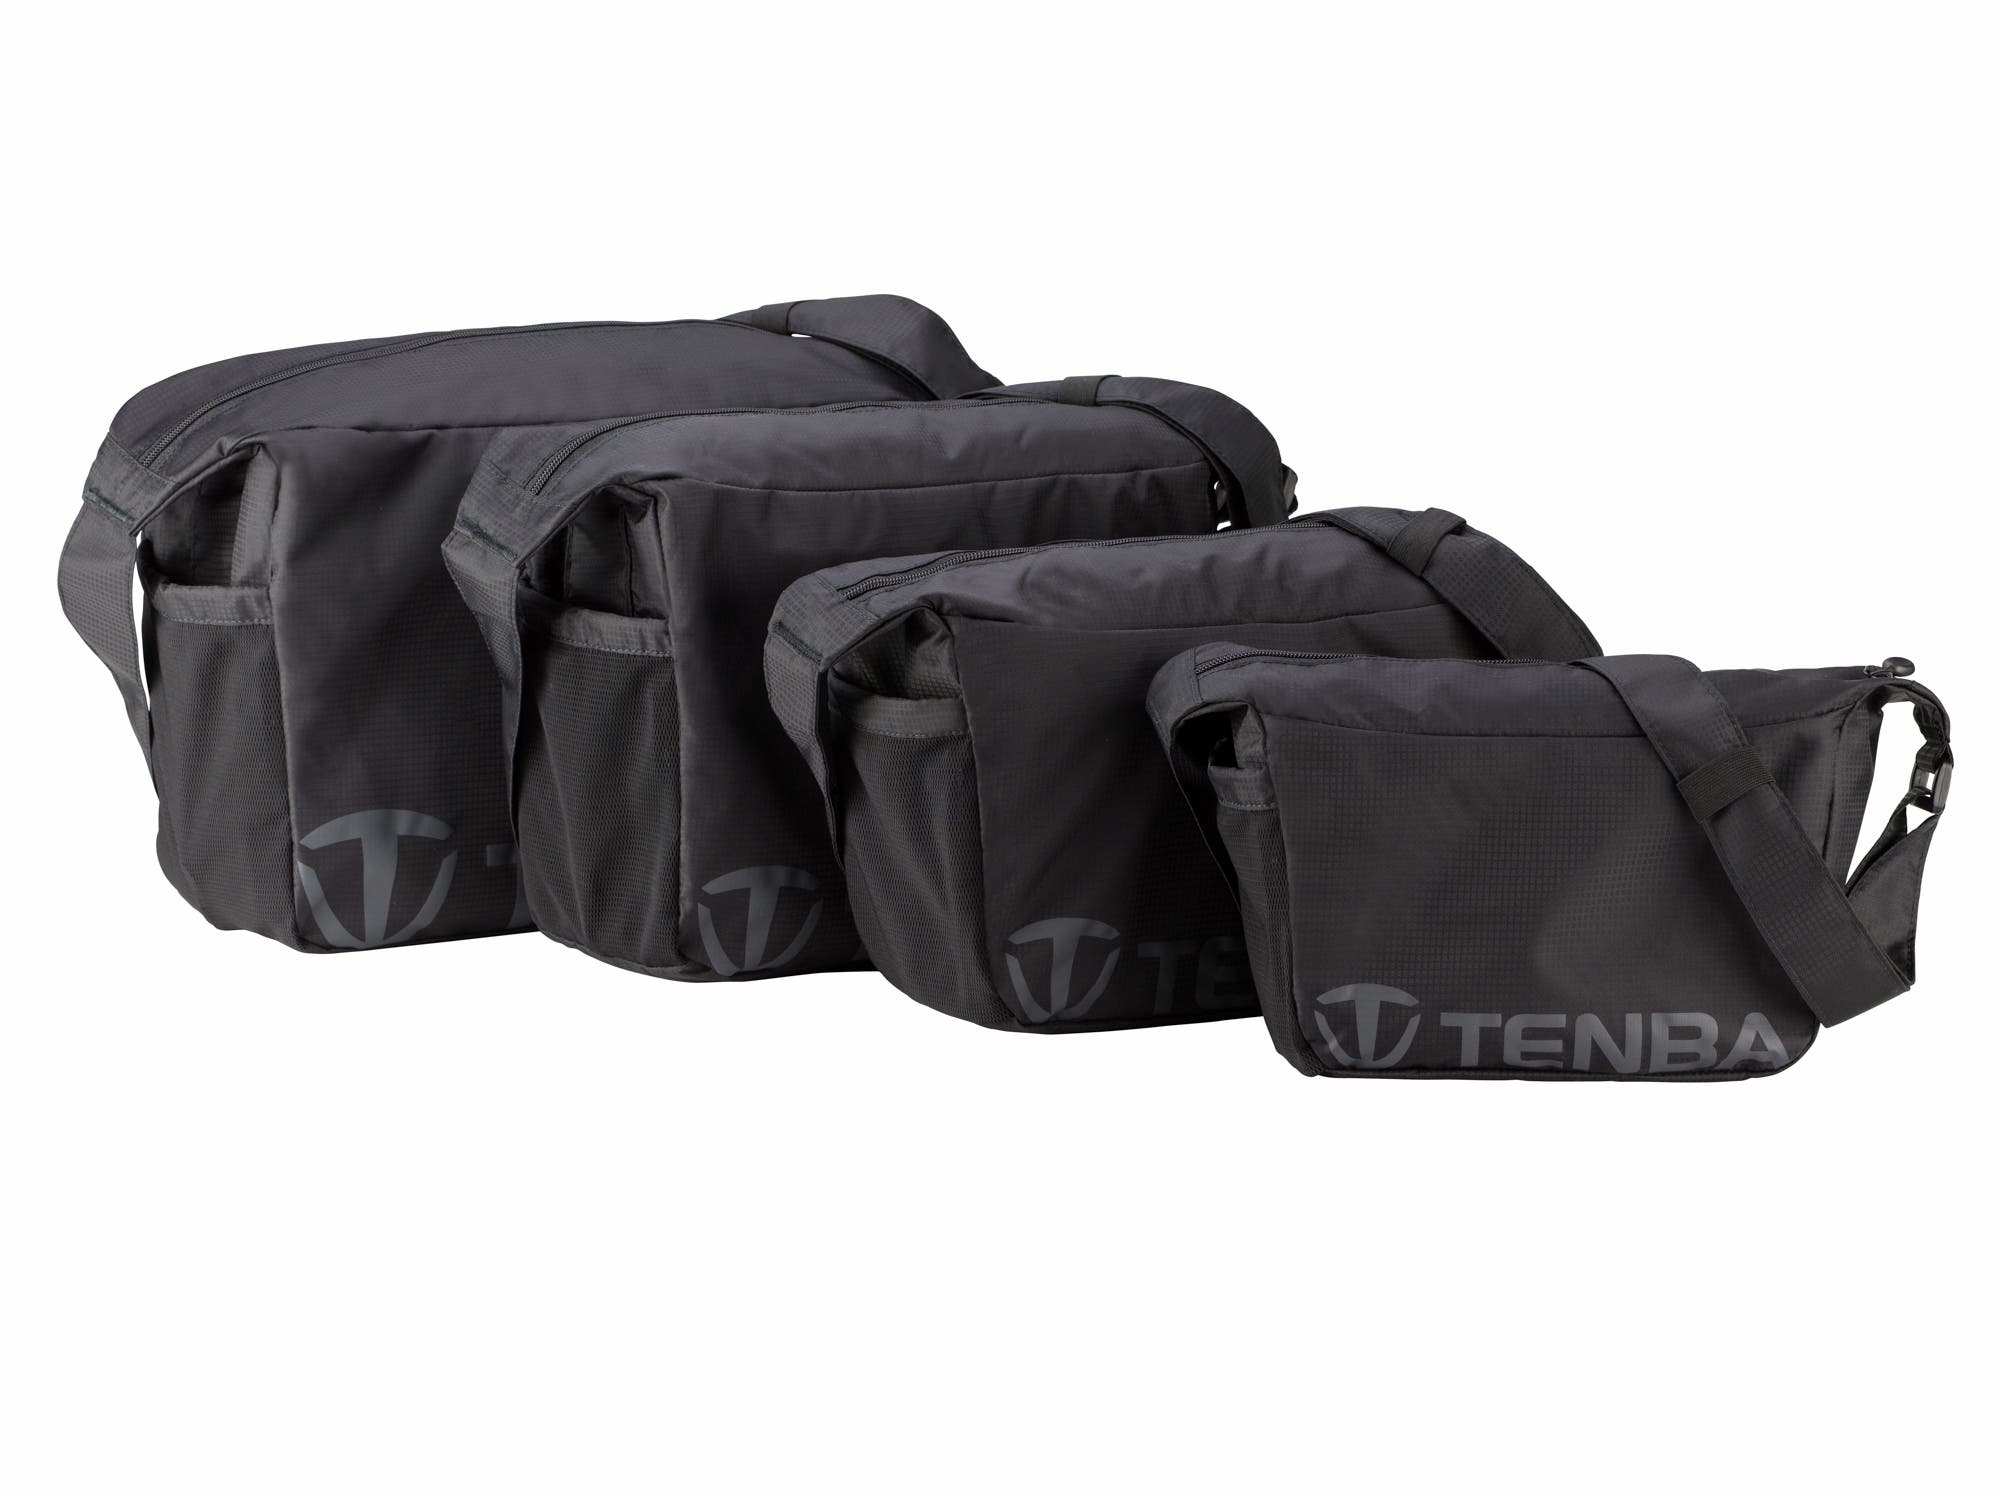 Chris Gampat The Phoblographer Tenba Packlite Travel Bags 5 Of 8 Iso 501